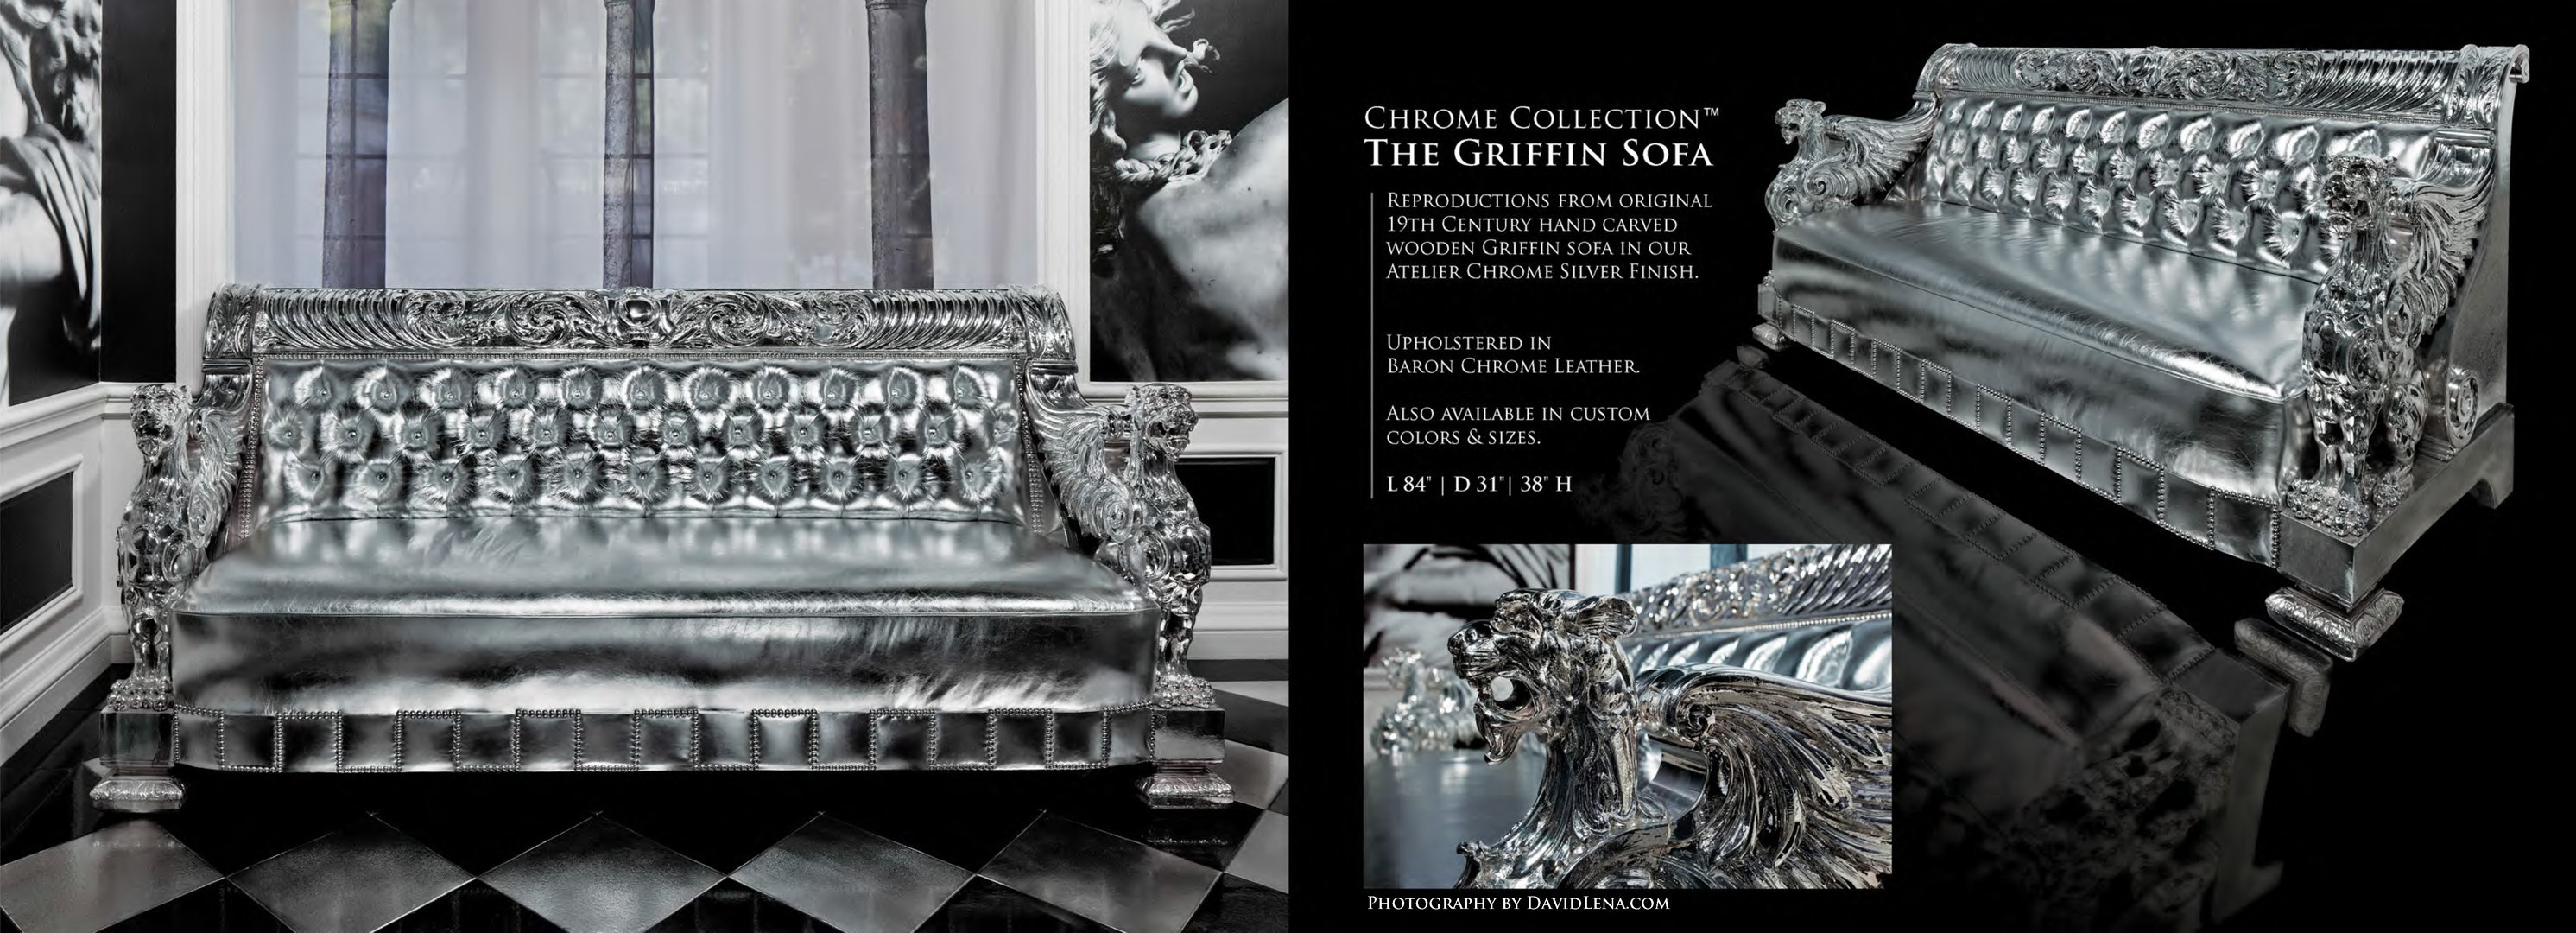 The Griffin Sofa